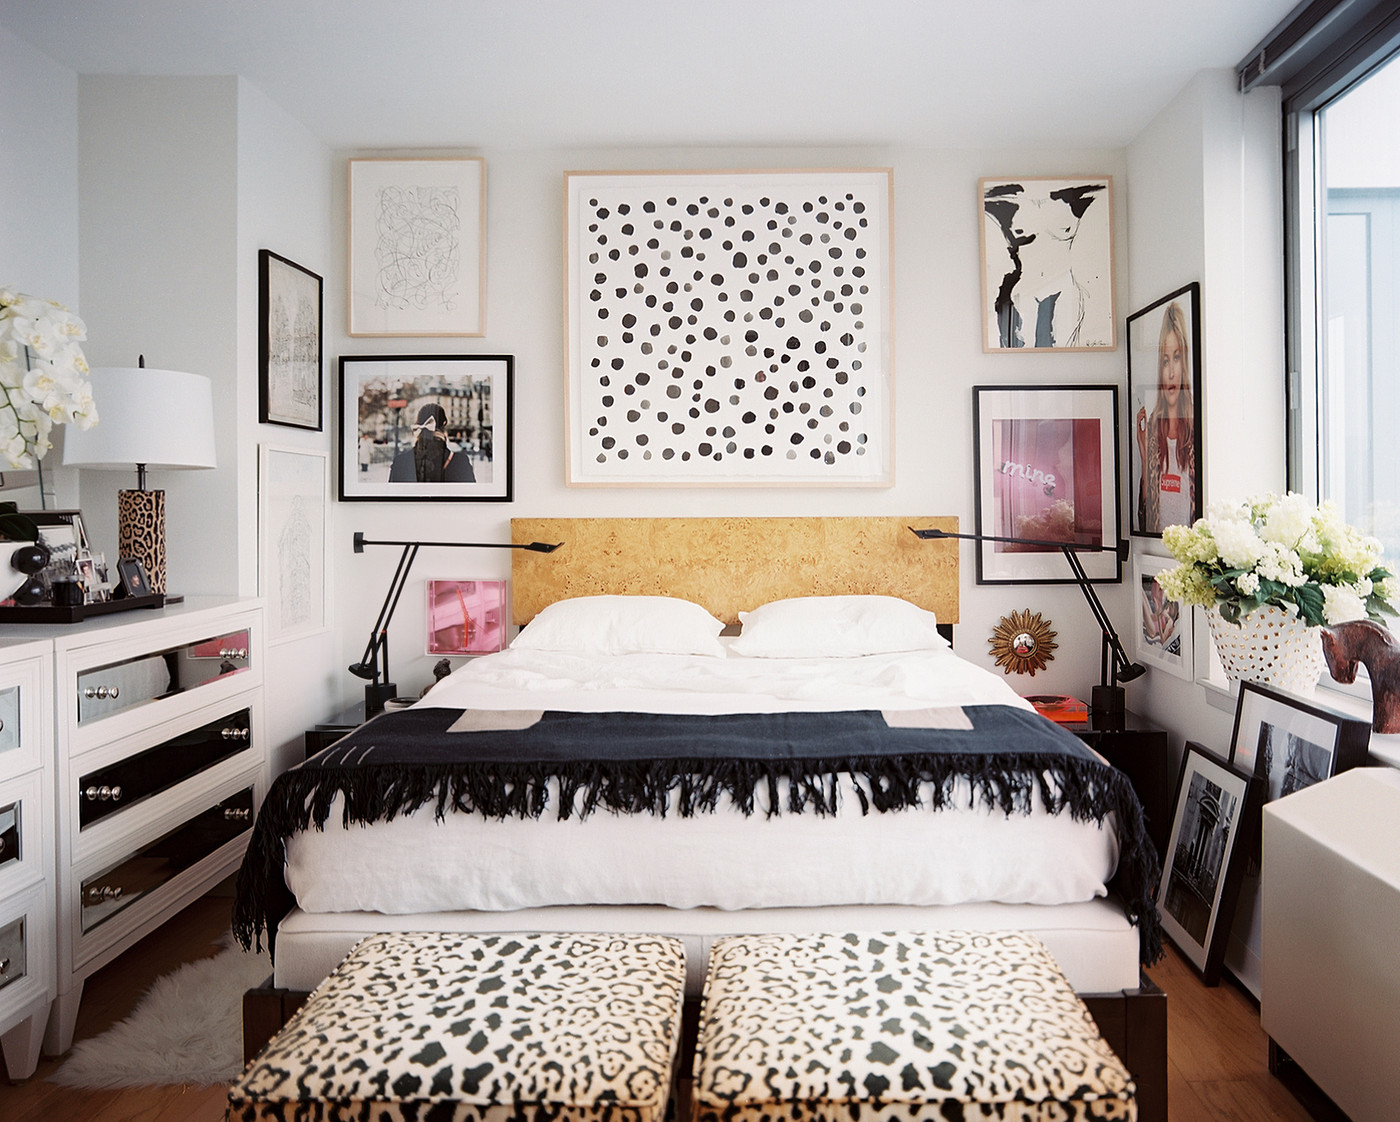 Black And White Artwork For Bedroom Eclectic Bedroom Photos 185 Of 274